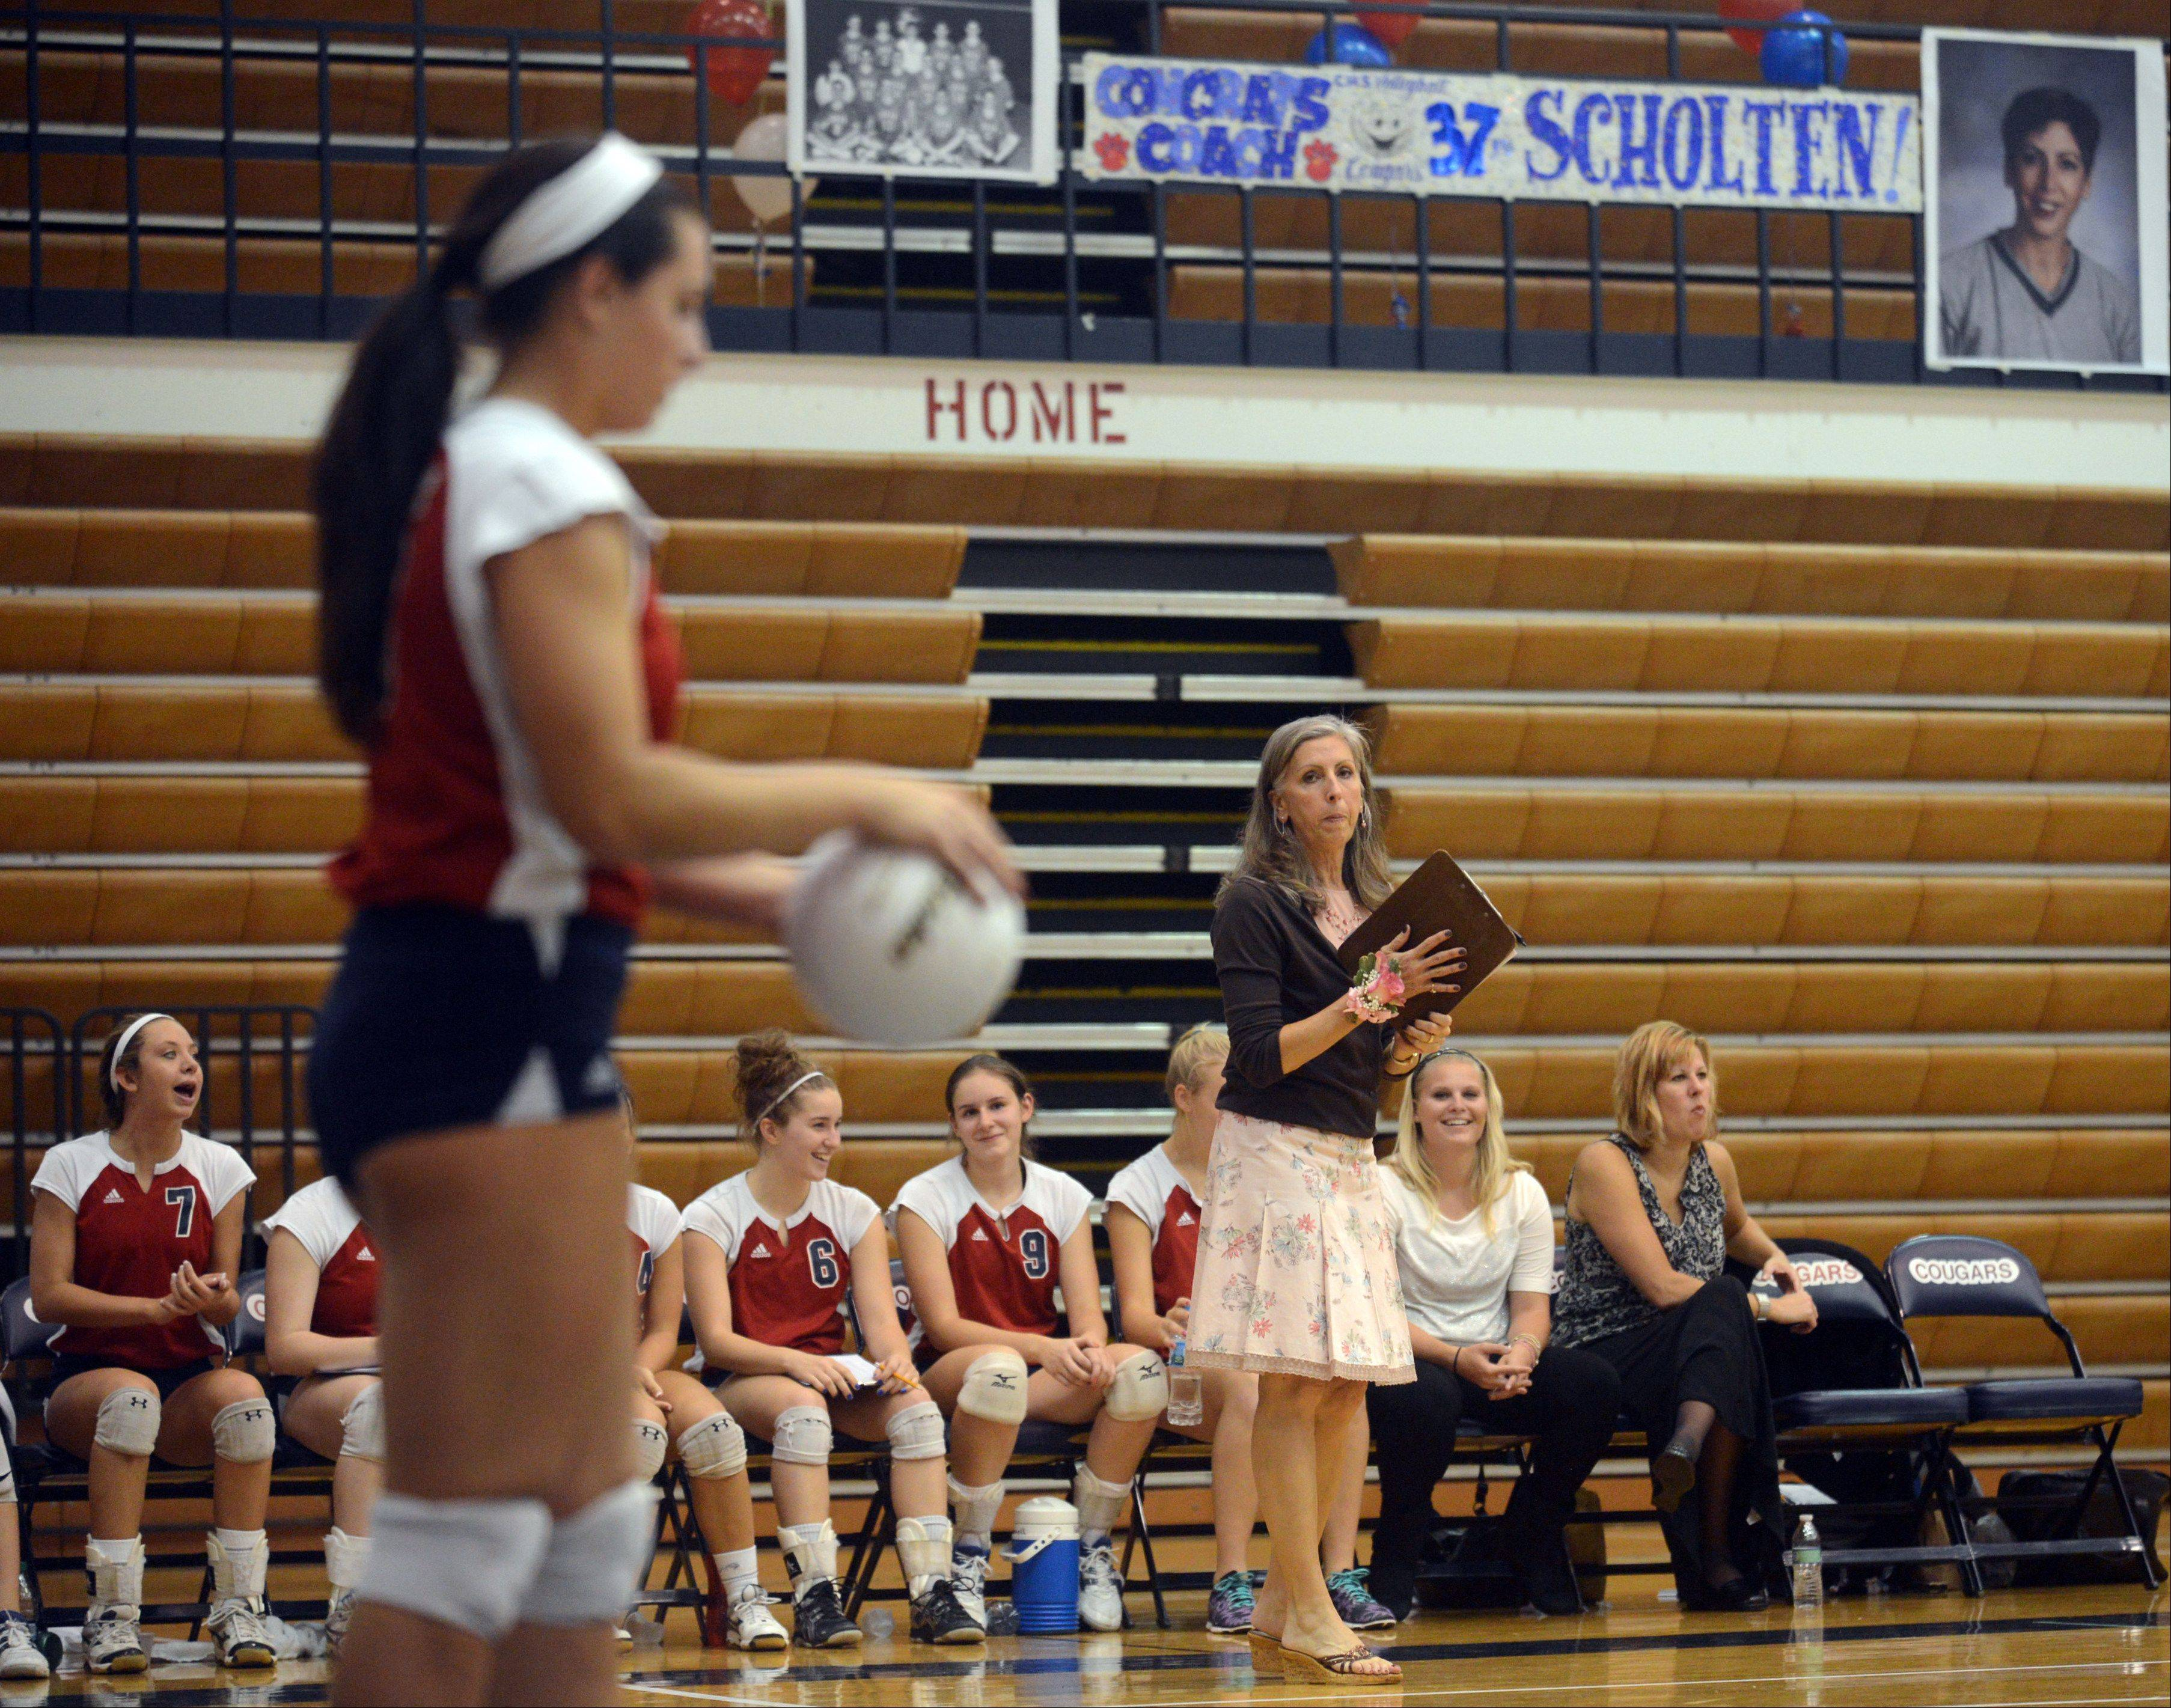 Conant volleyball coach Peggy Scholten was honored before a game with Schaumburg on Tuesday night at William N. Perry Gymnasium. Scholten is retiring after this, her 37th year of coaching.